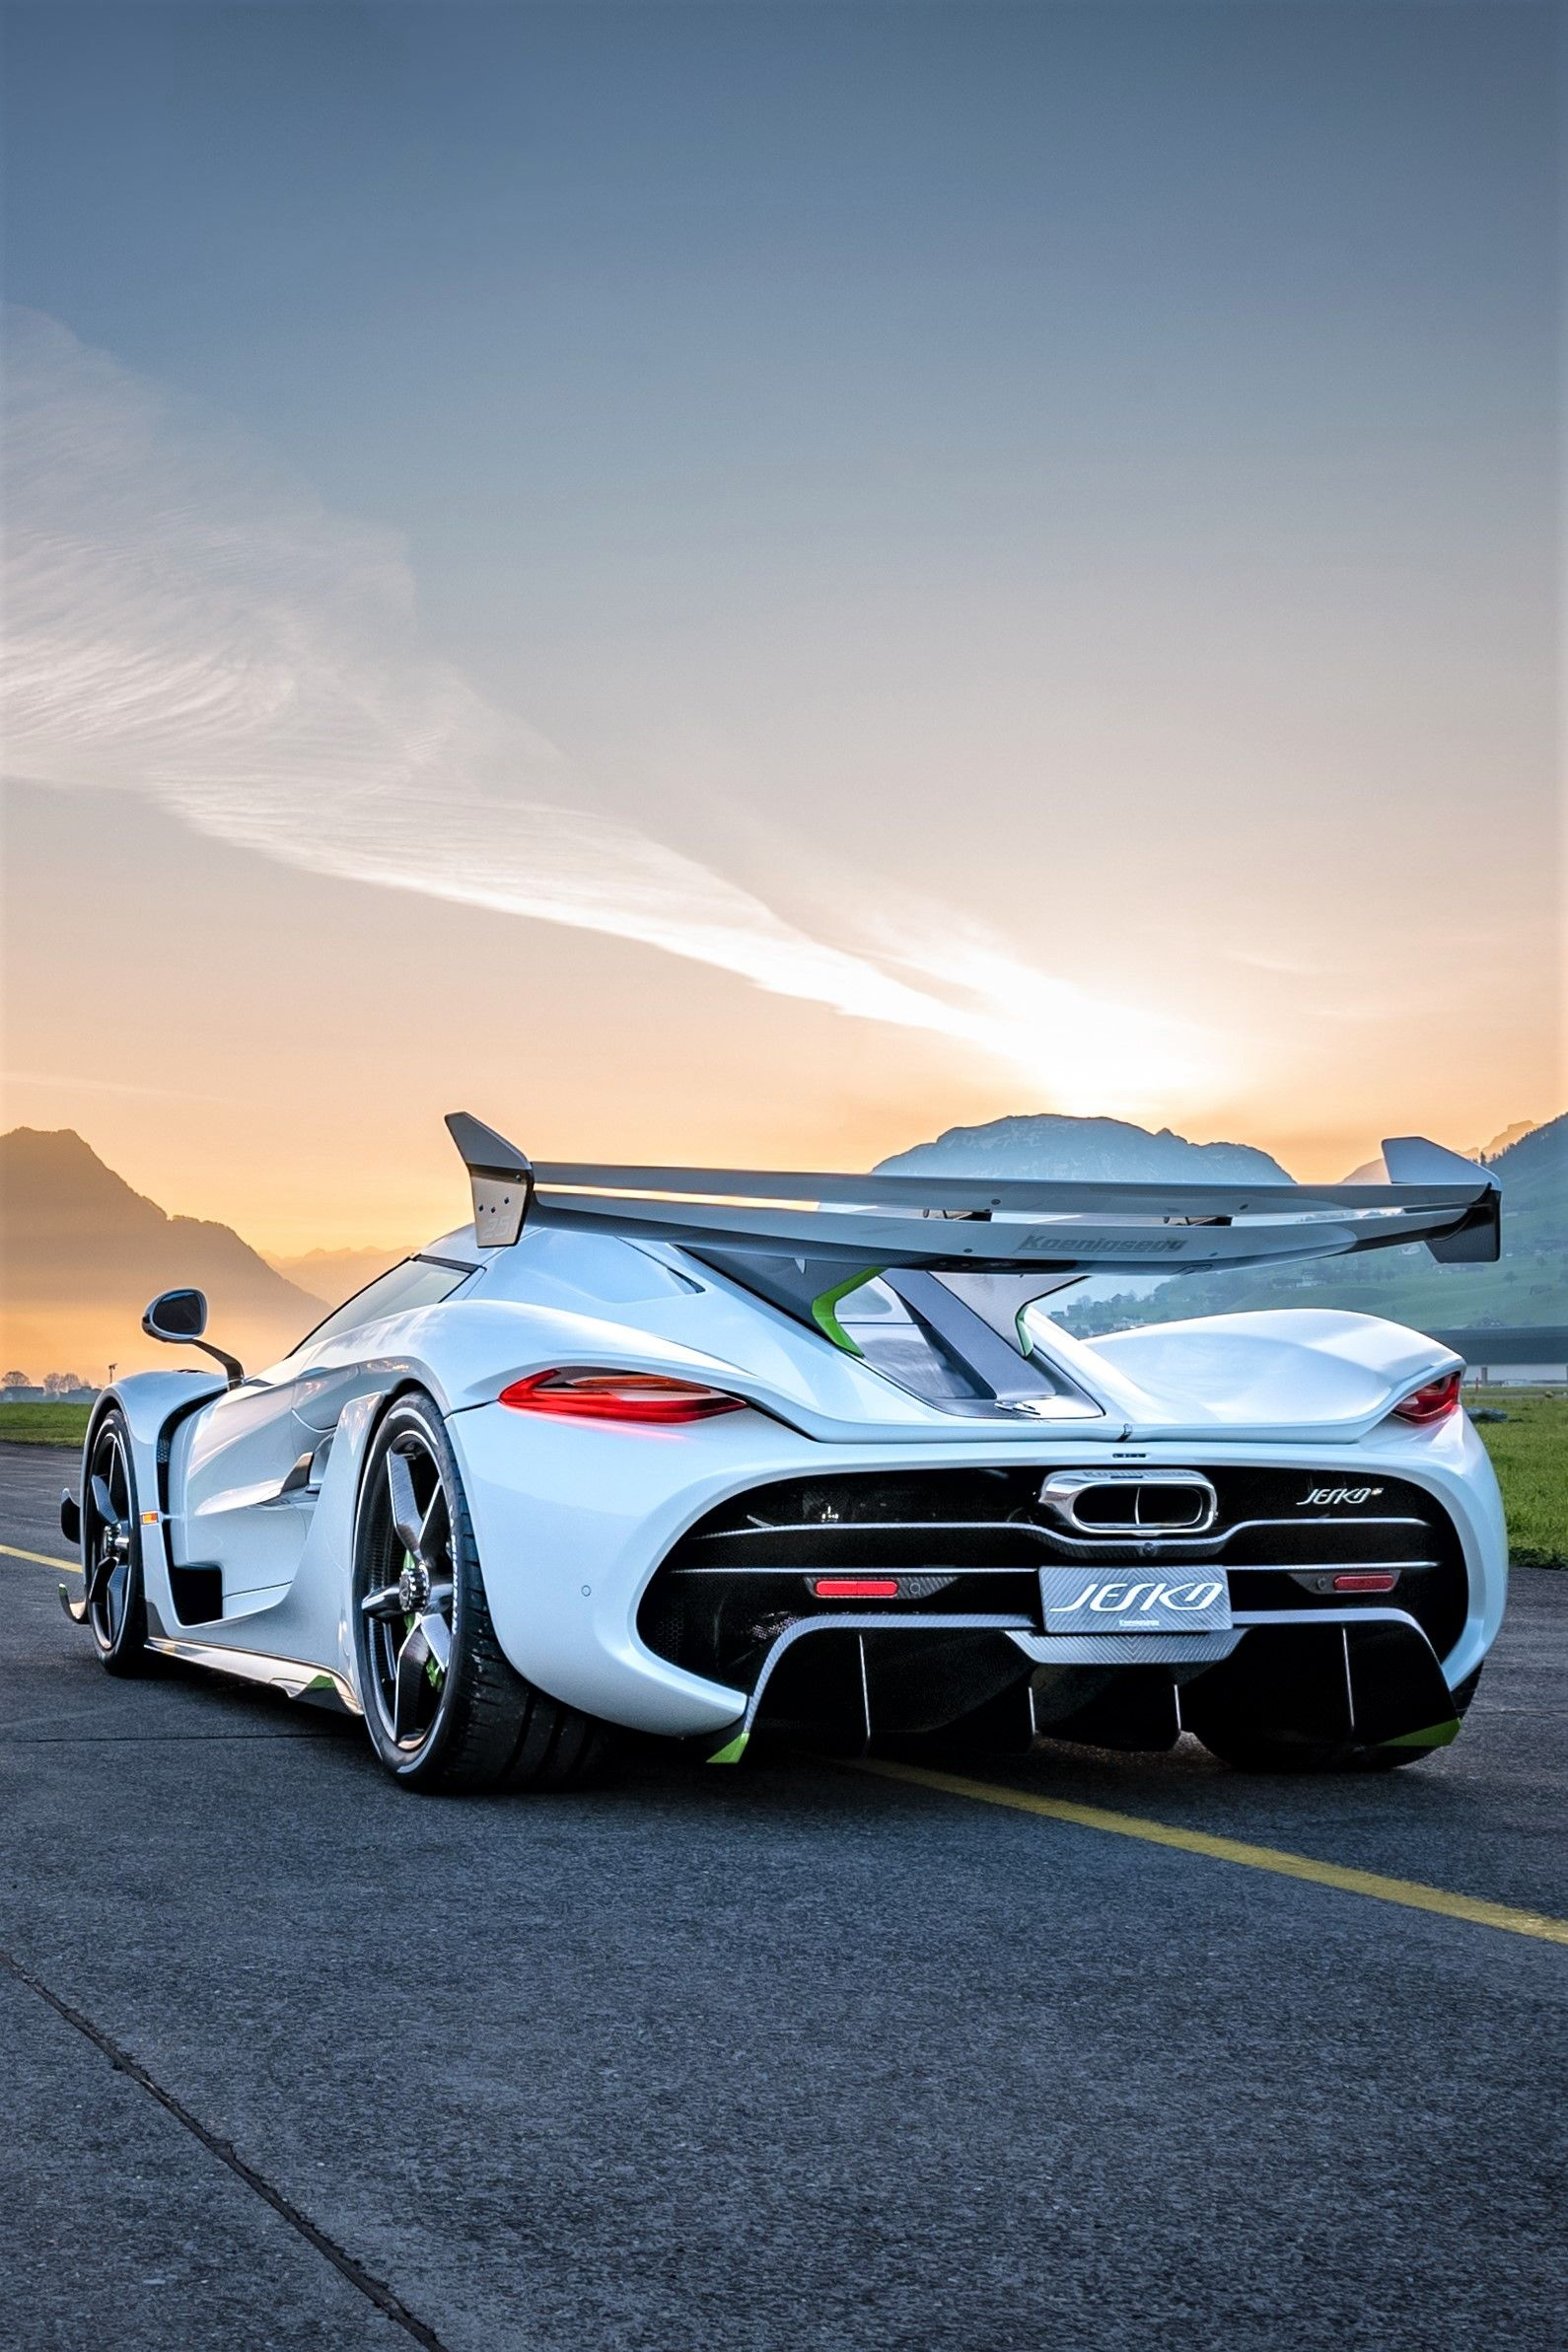 2019 Koenigsegg Jesko Brut Power The Man Koenigsegg Sports Cars Luxury Super Cars